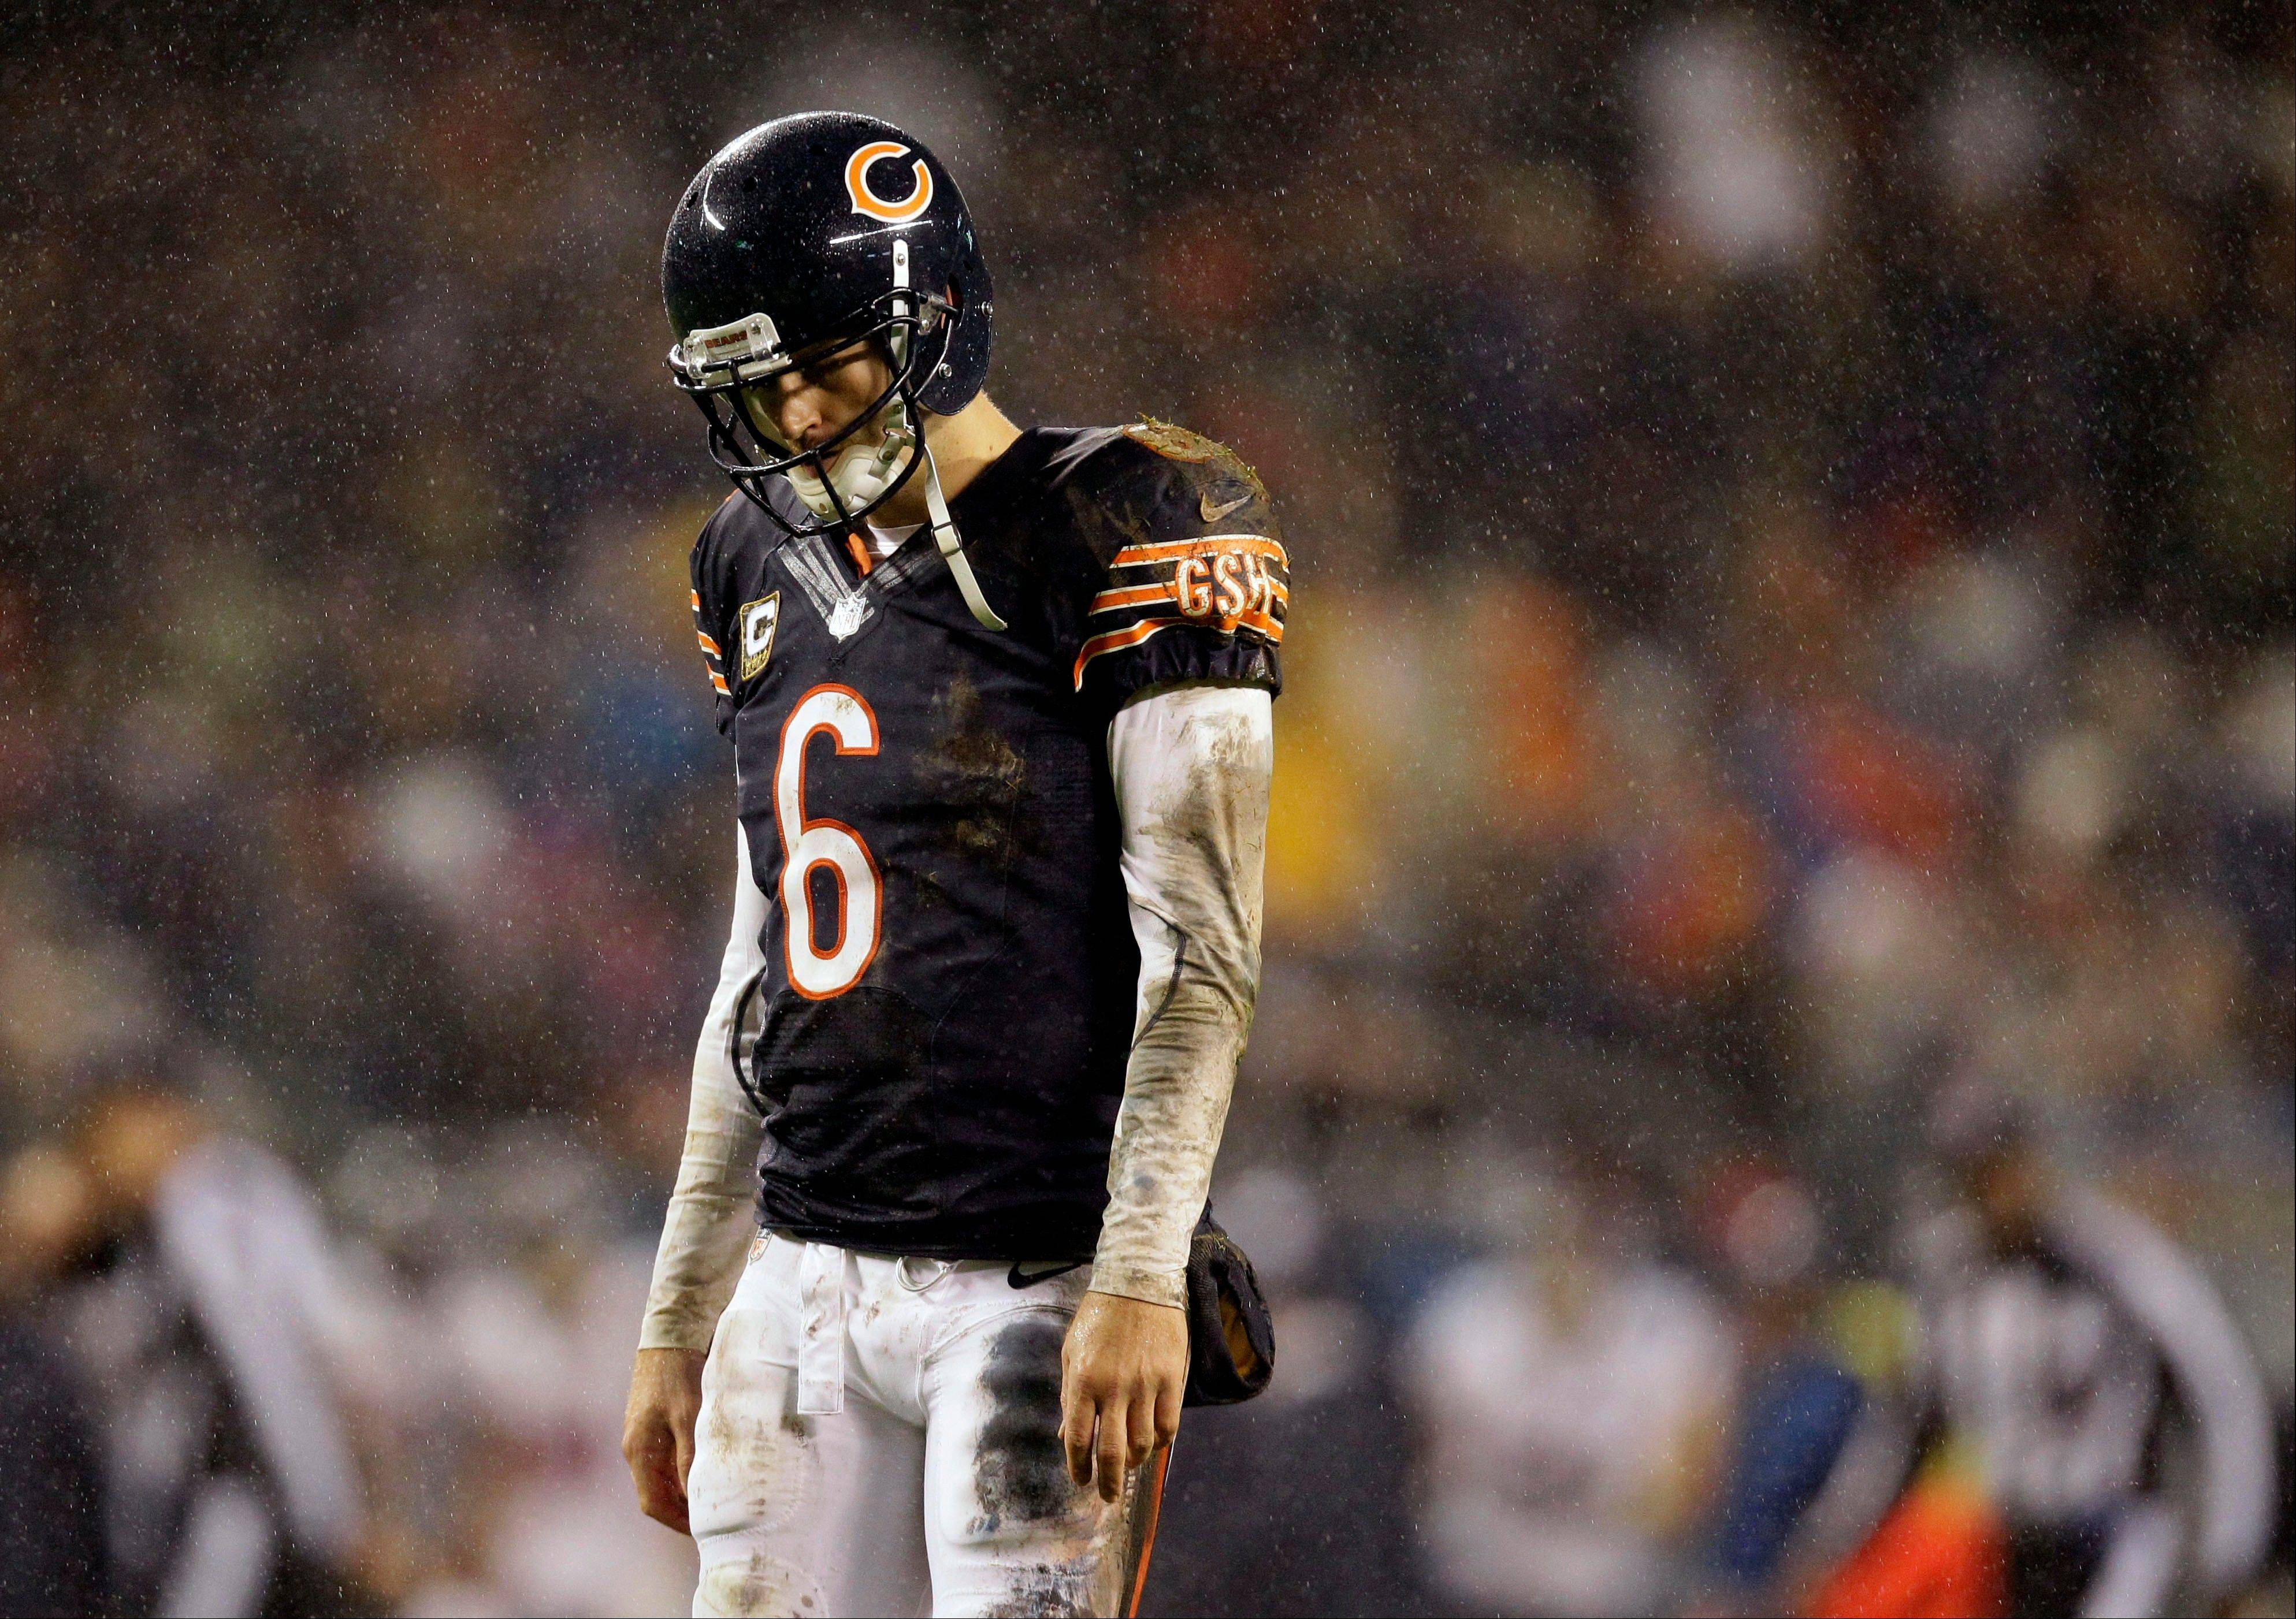 Chicago Bears quarterback Jay Cutler (6) walks of the field after a play against the Houston Texans in the first half.